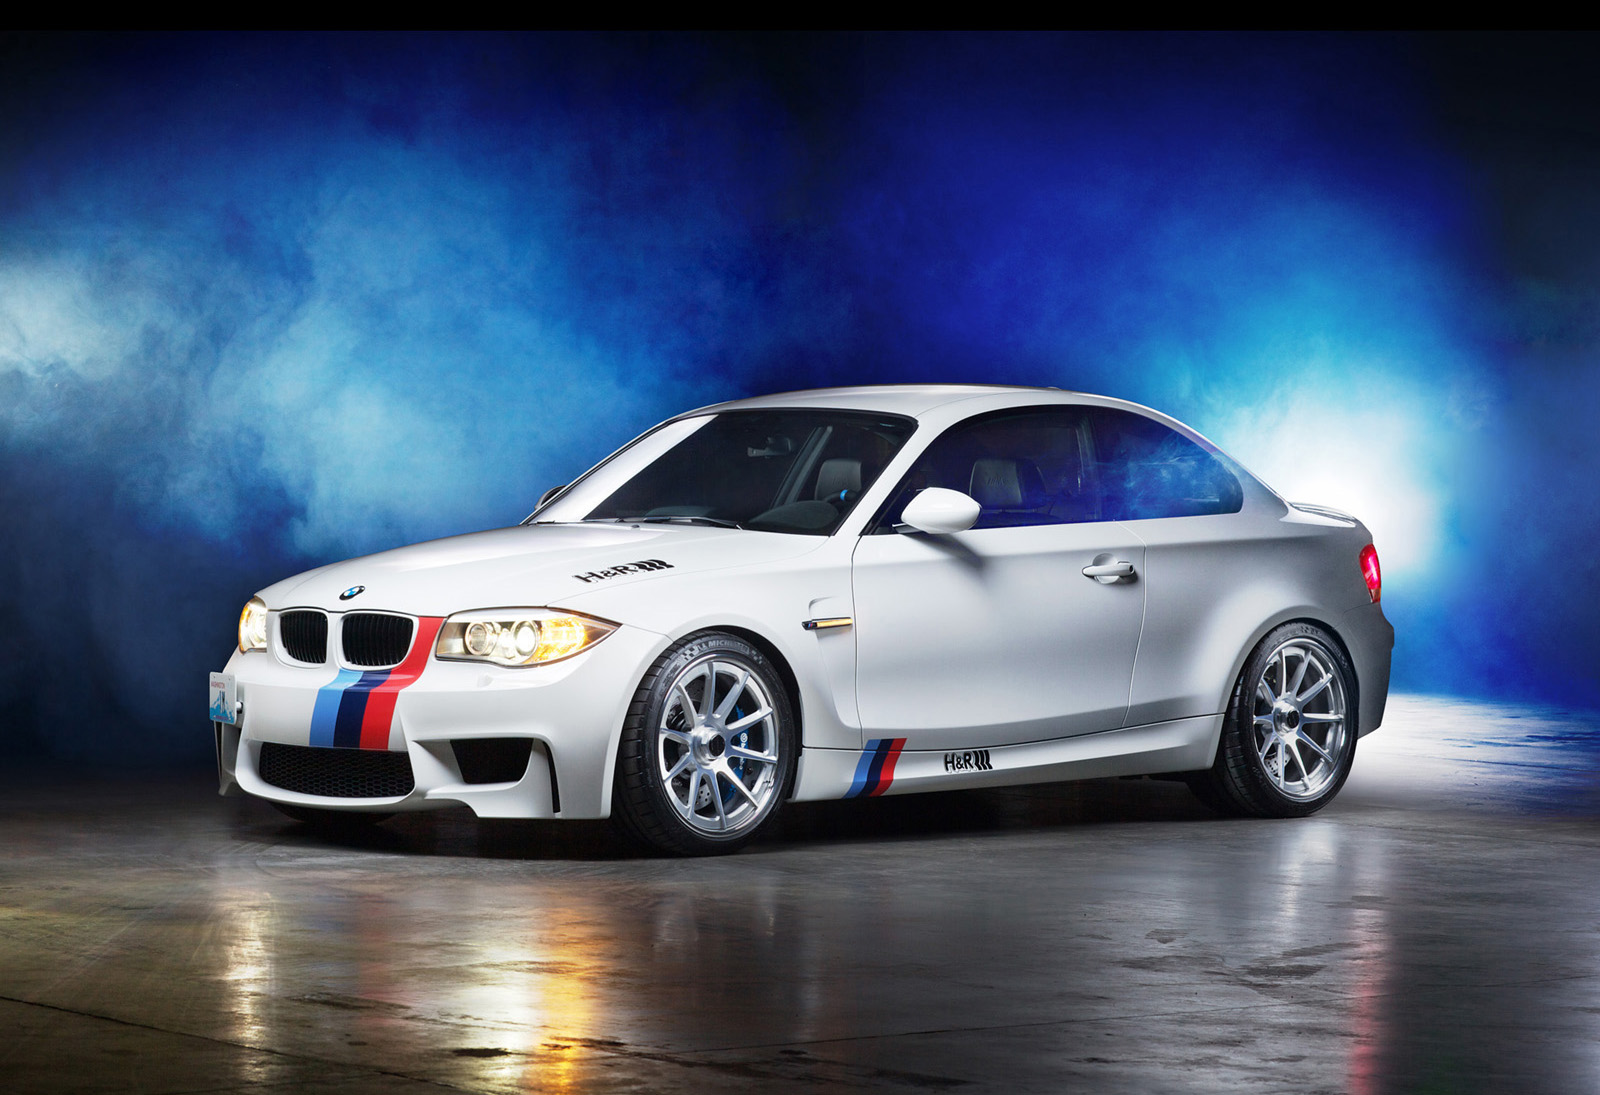 2012 H R 1M Coupe Project Vehicle News And Information